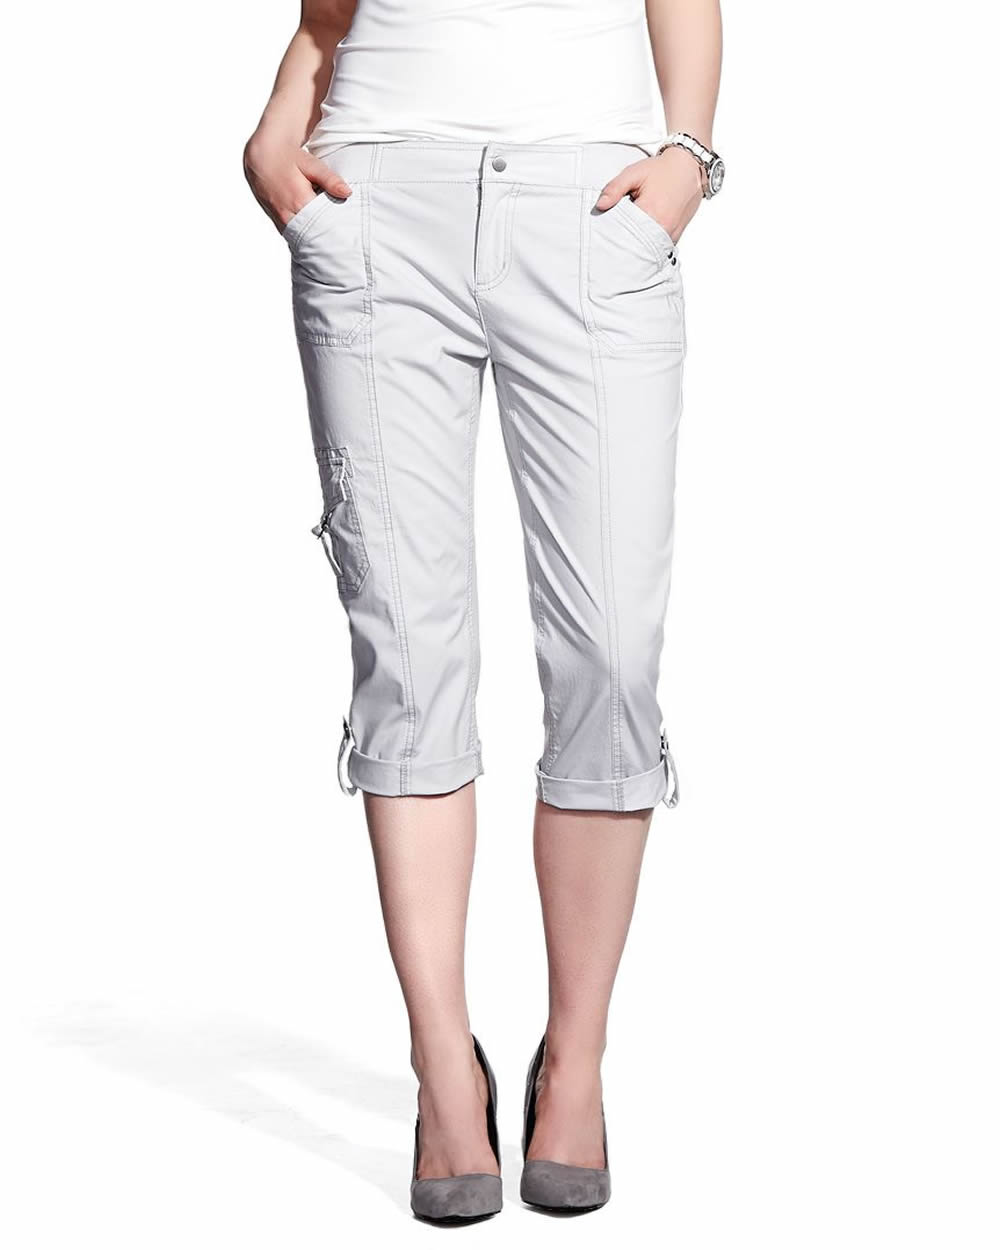 Womens Cargo Pants. Slip into a pair of women's cargo pants and enjoy contentment from pants that look great and offer handy solutions for storing crucial items. Boldly prepare for a day at an outdoor music festival, an afternoon hiking trip or a dinner out with close friends.